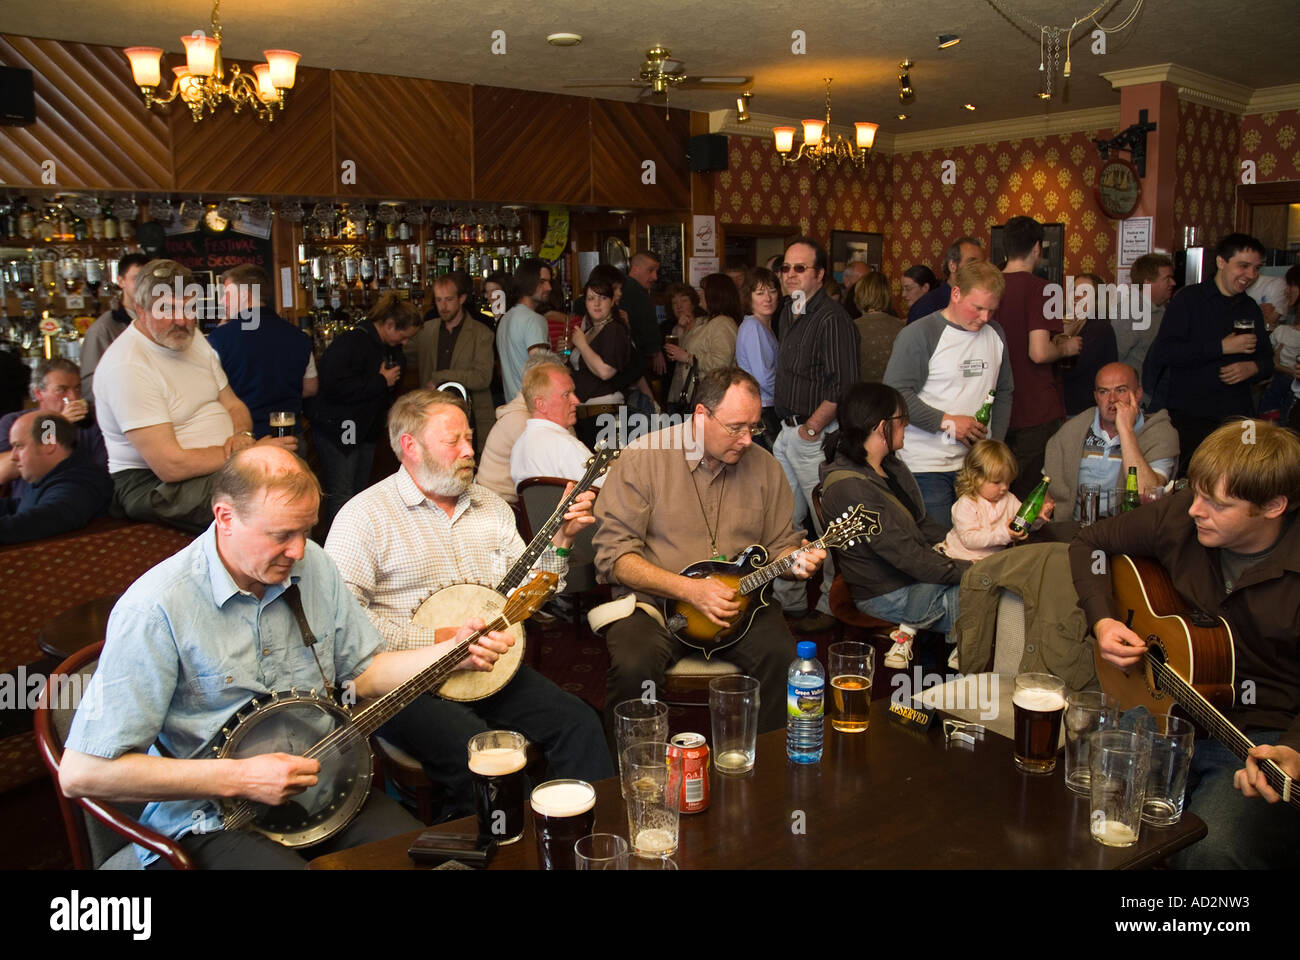 dh Orkney Folk Festival STROMNESS ORKNEY Musicians playing banjos and guitar Stromness Hotel lounge bar scotland Stock Photo